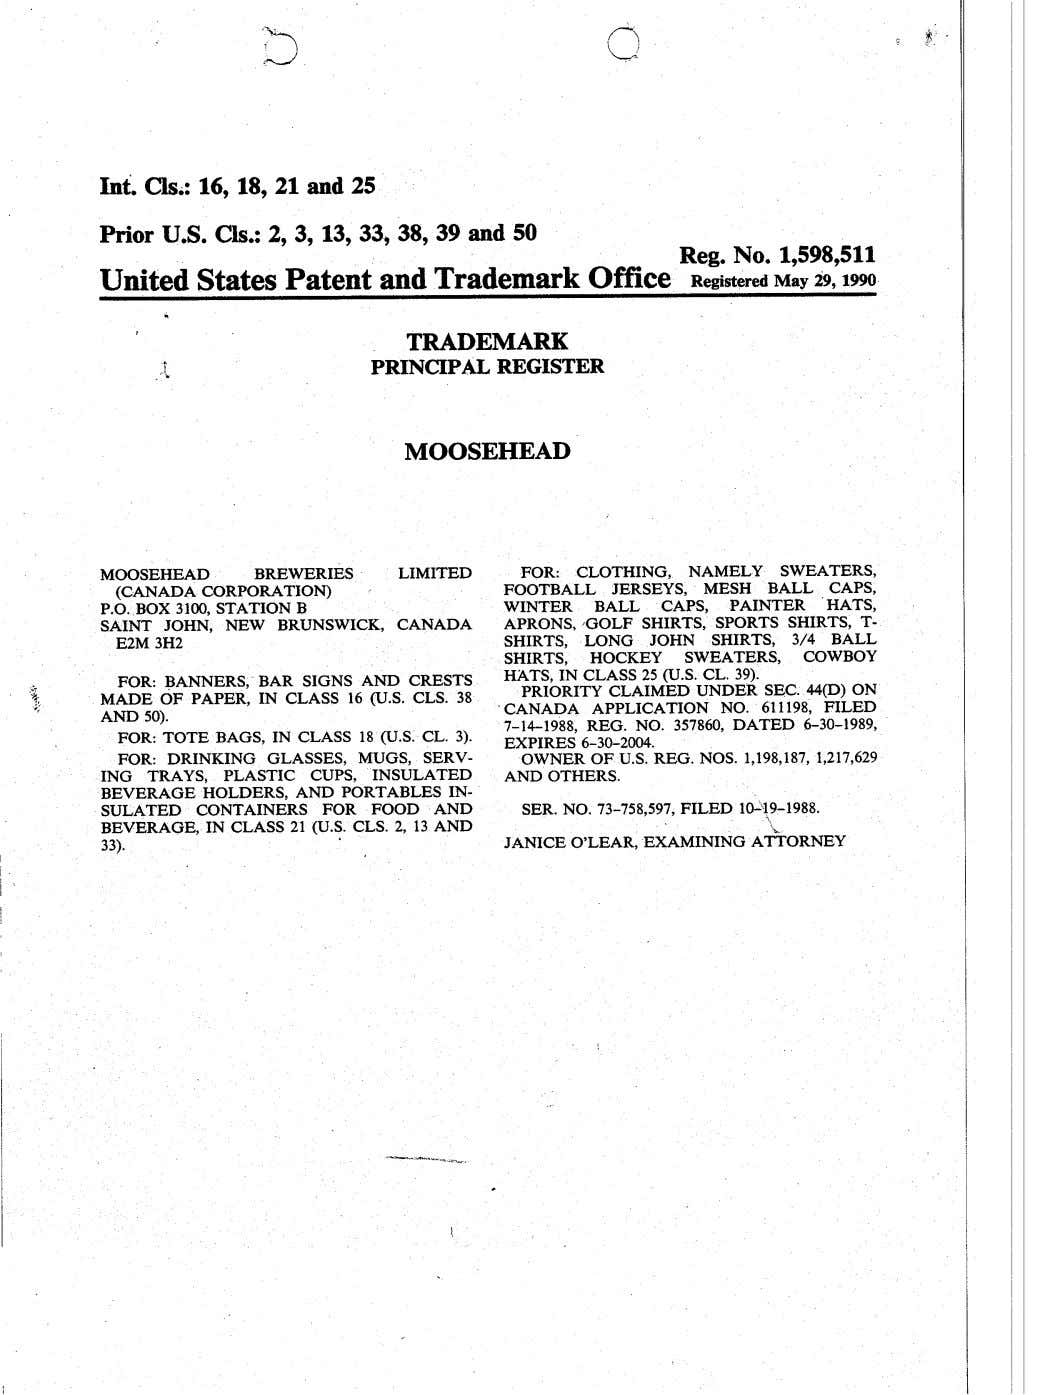 Case 1:15-cv-00260-GTS-RFT Document 29 Filed 06/26/15 Page 18 of 26